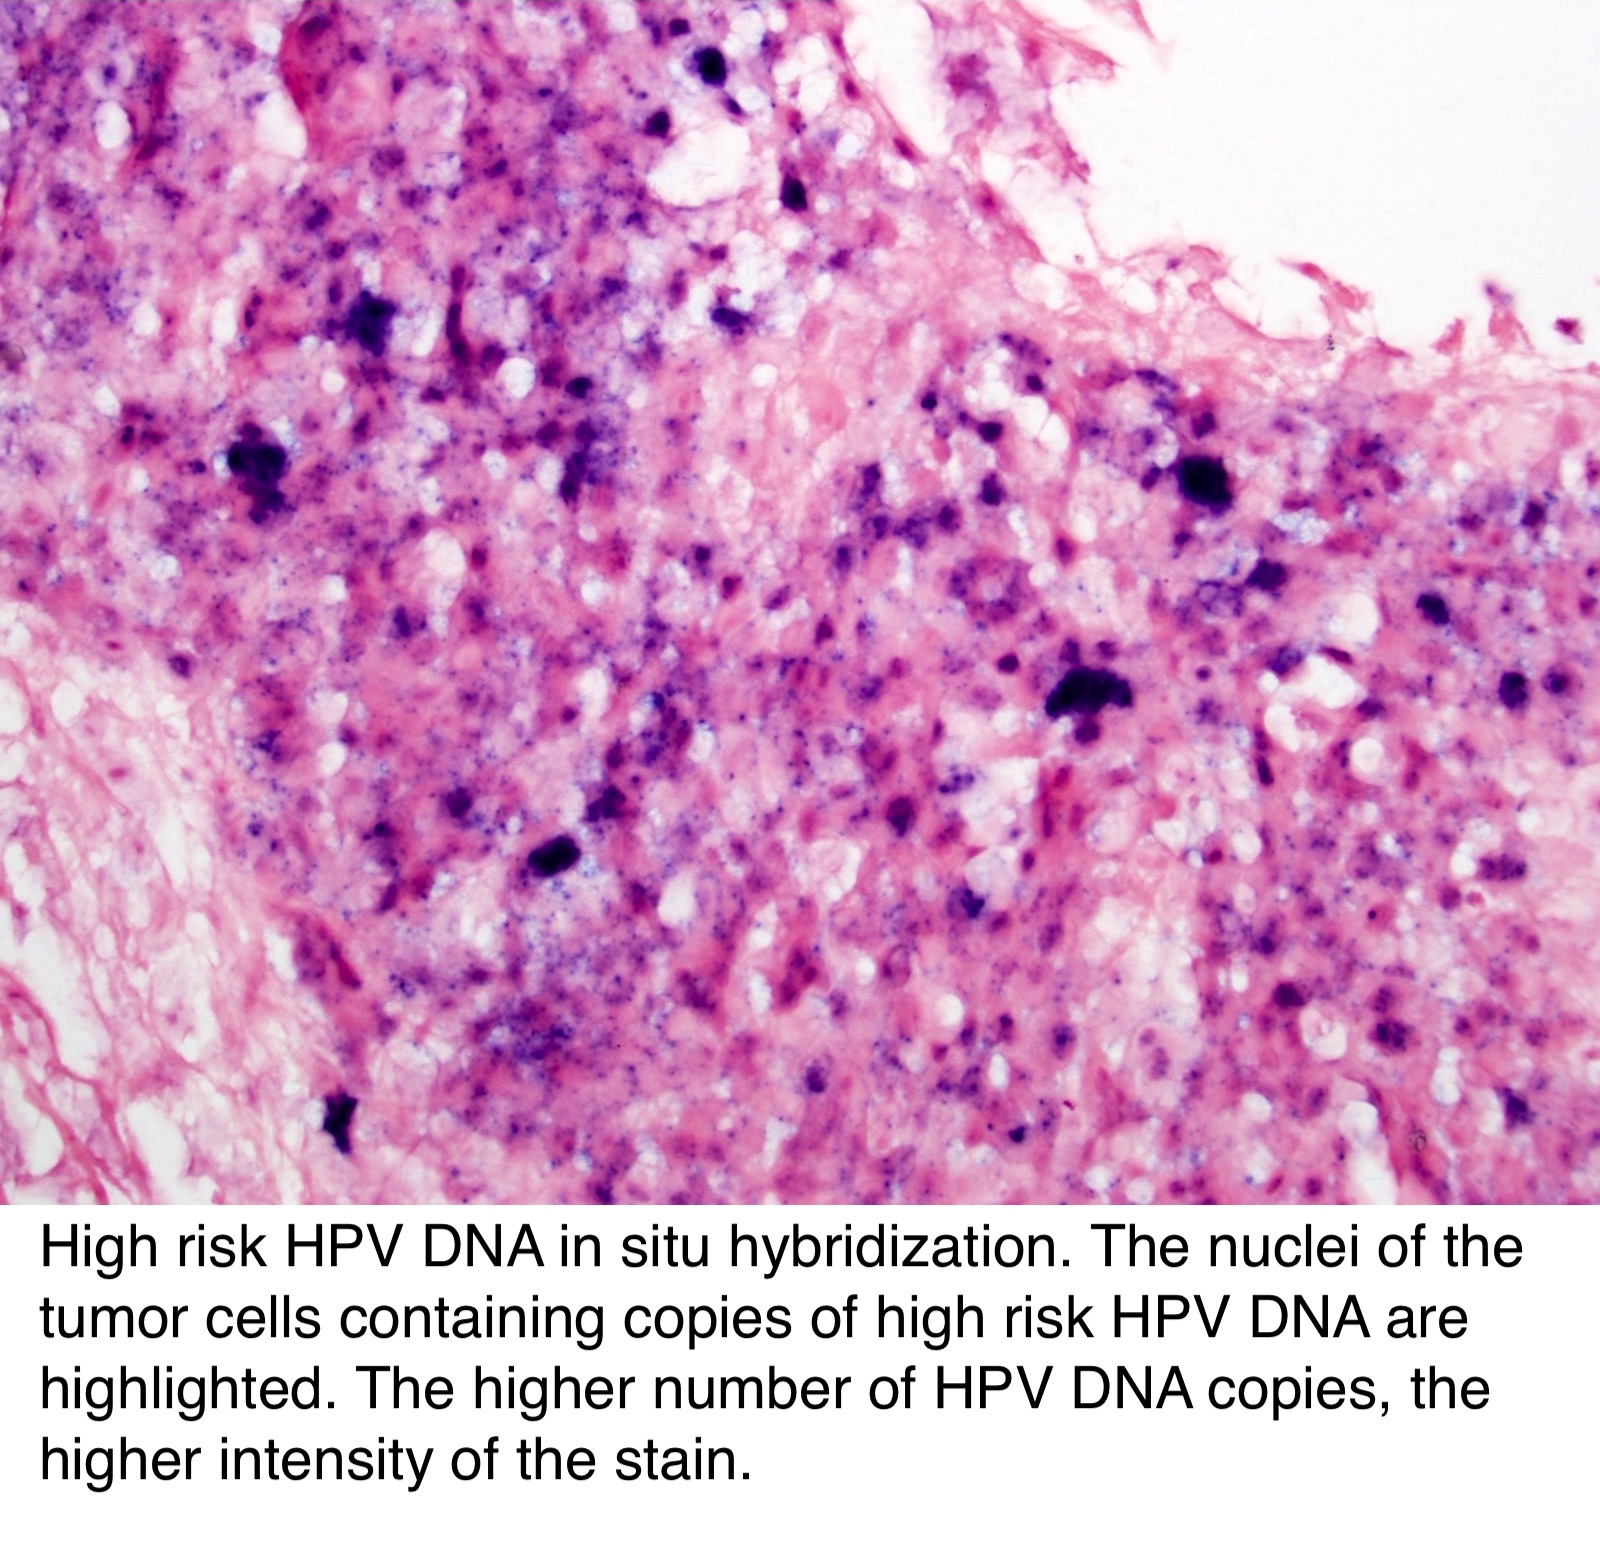 hpv associated oropharyngeal cancer pathology outlines)